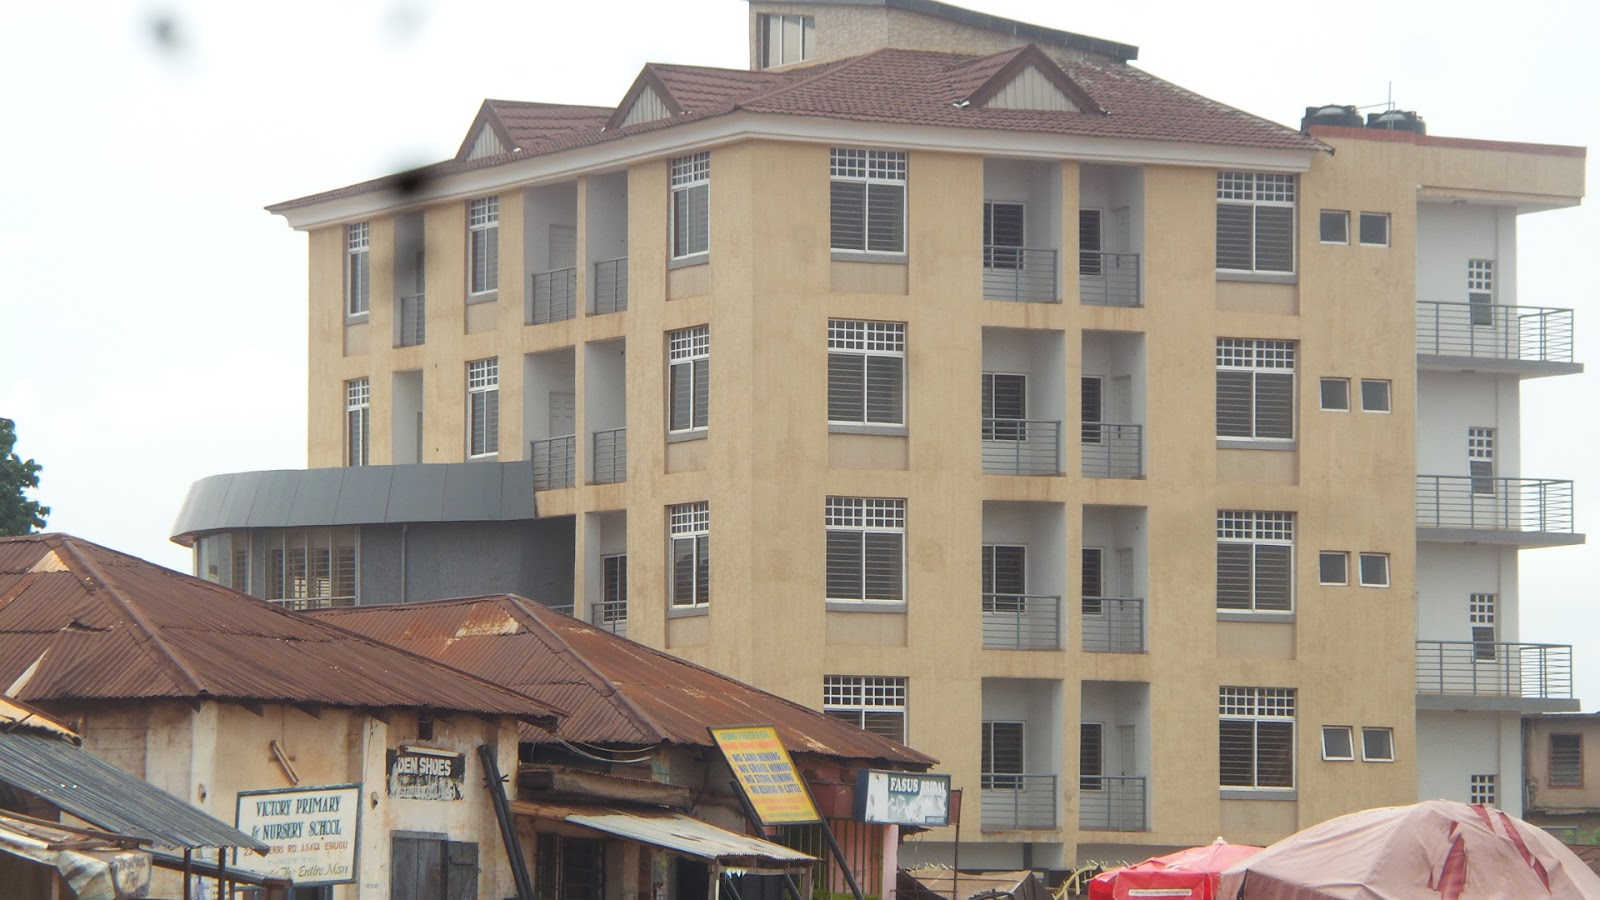 Investors are buying demolishing and constructing new houses which help to add to the rising profile of enugu as a business destination